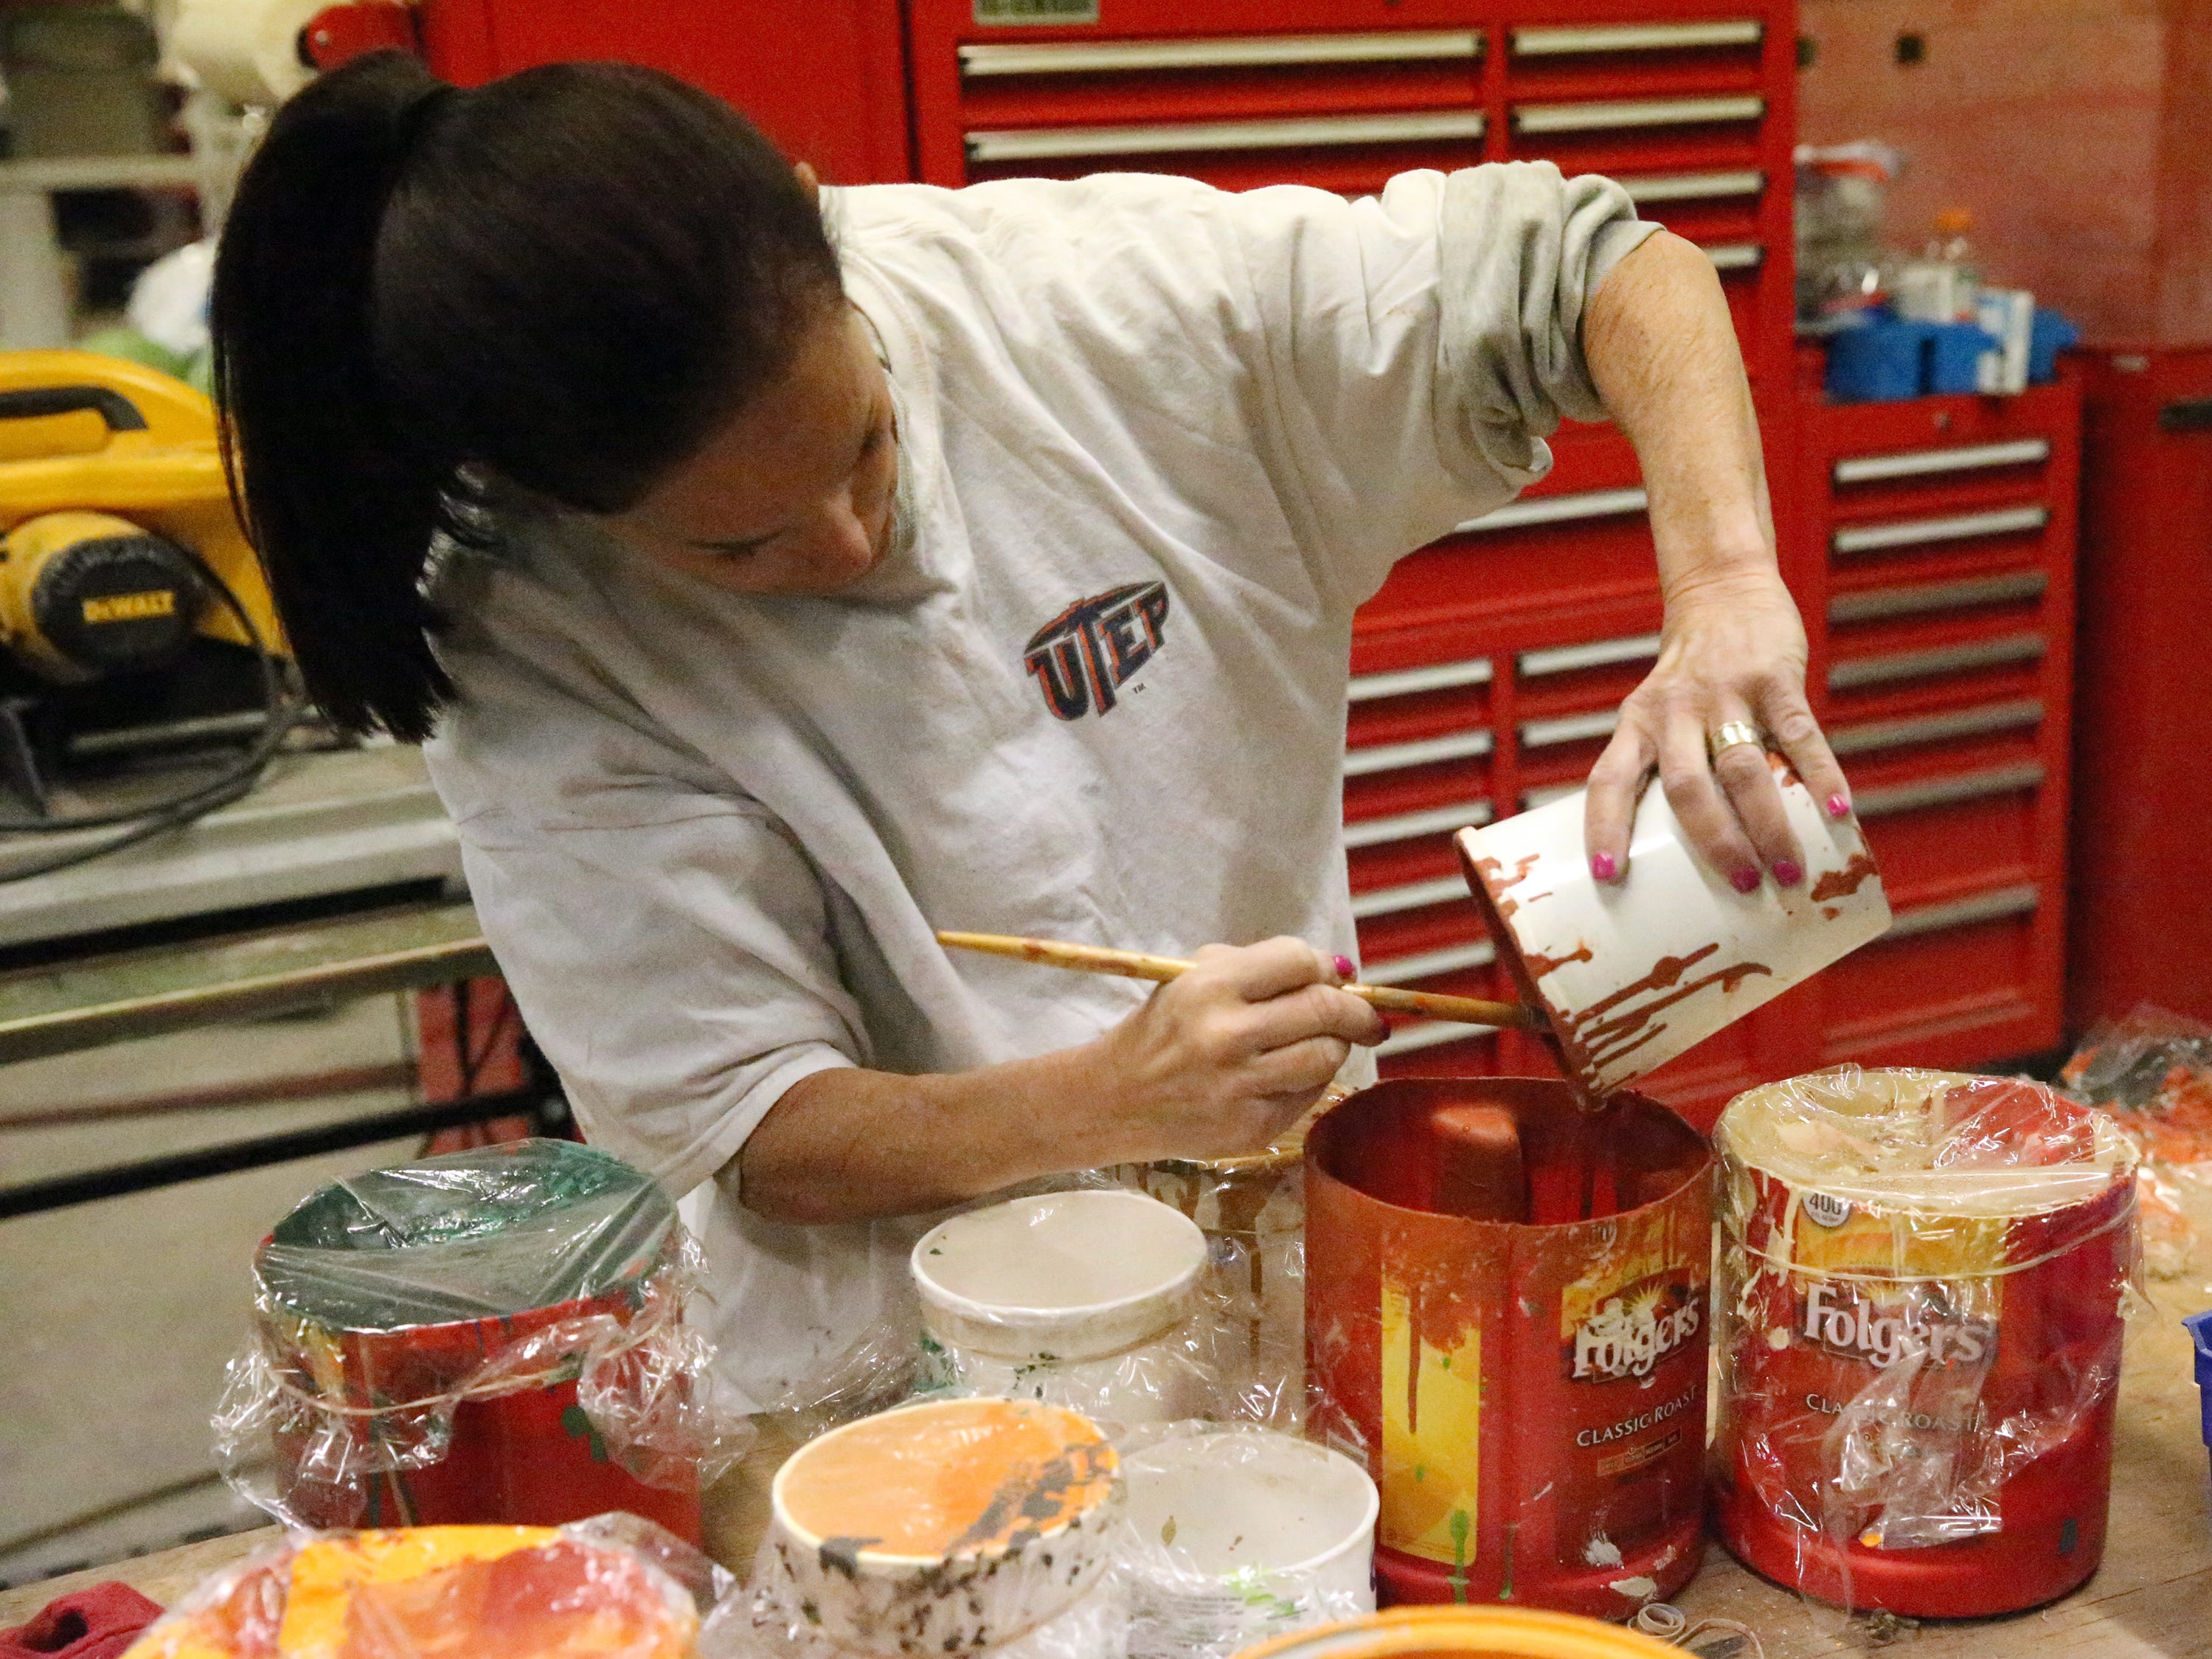 Robin Kobren, a parade float volunteer pours paint while working on a parade float Monday.